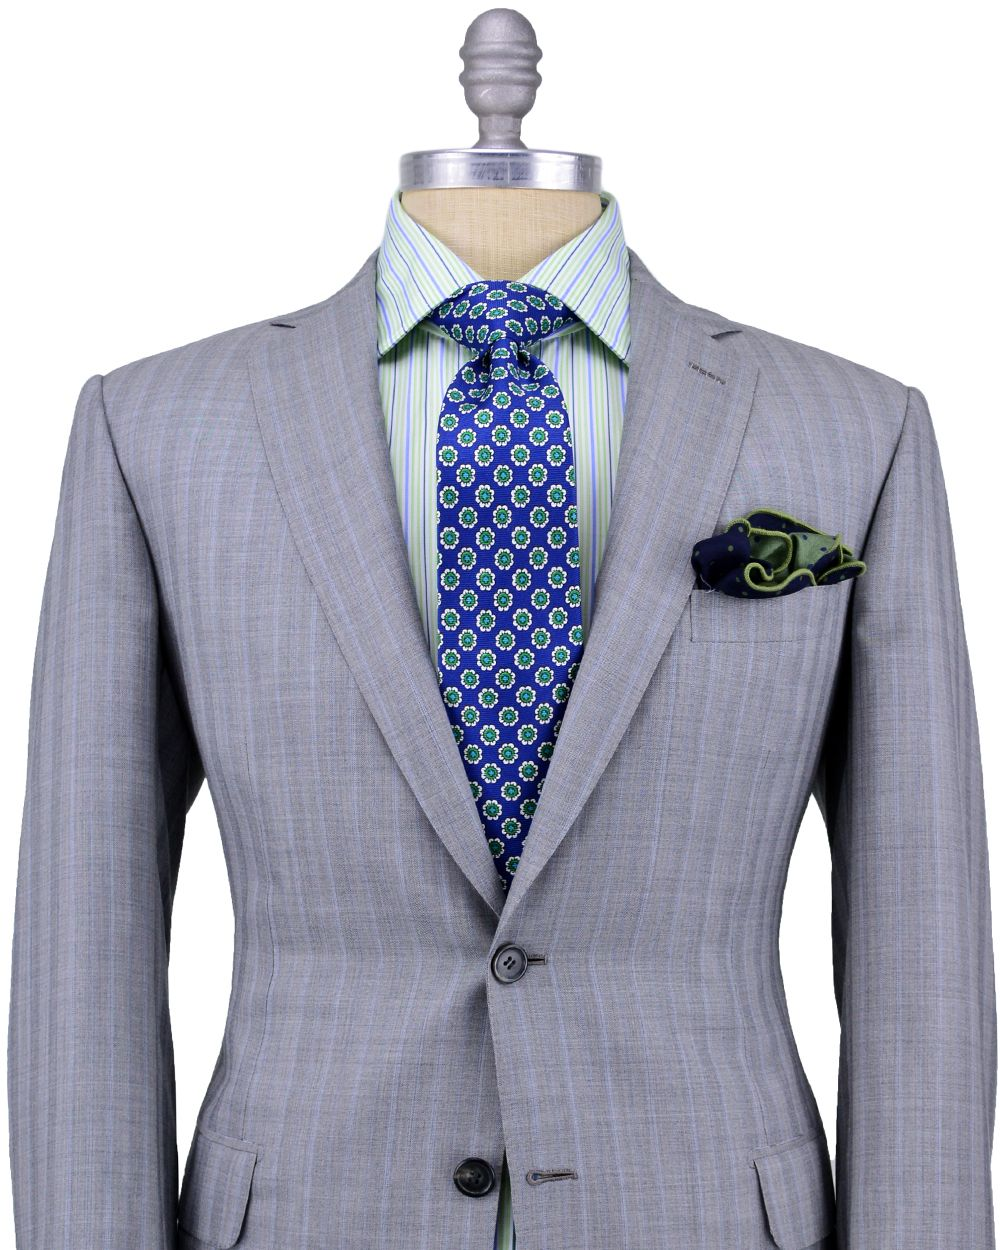 Brioni grey tonal and blue stripe suit 2 button jacket sky blue brioni grey tonal and blue stripe suit 2 button jacket sky blue cupro lining notch lapel nvjuhfo Gallery